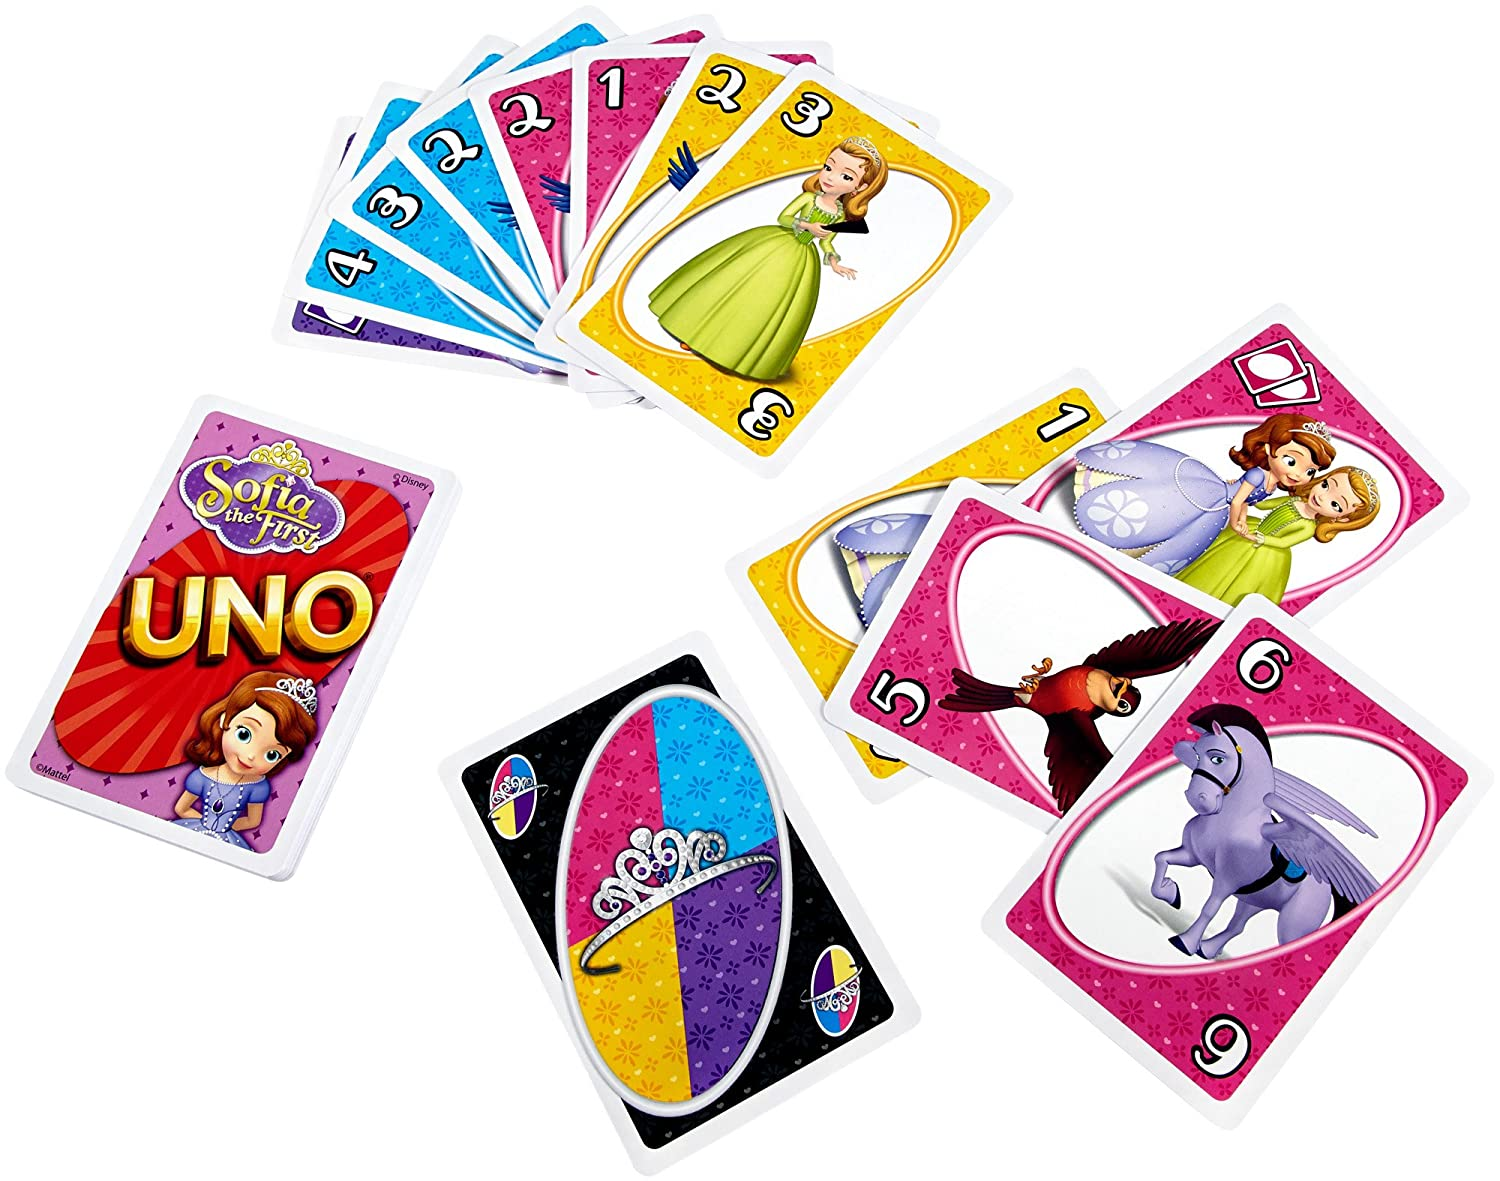 Sofia the First UNO Card Game.